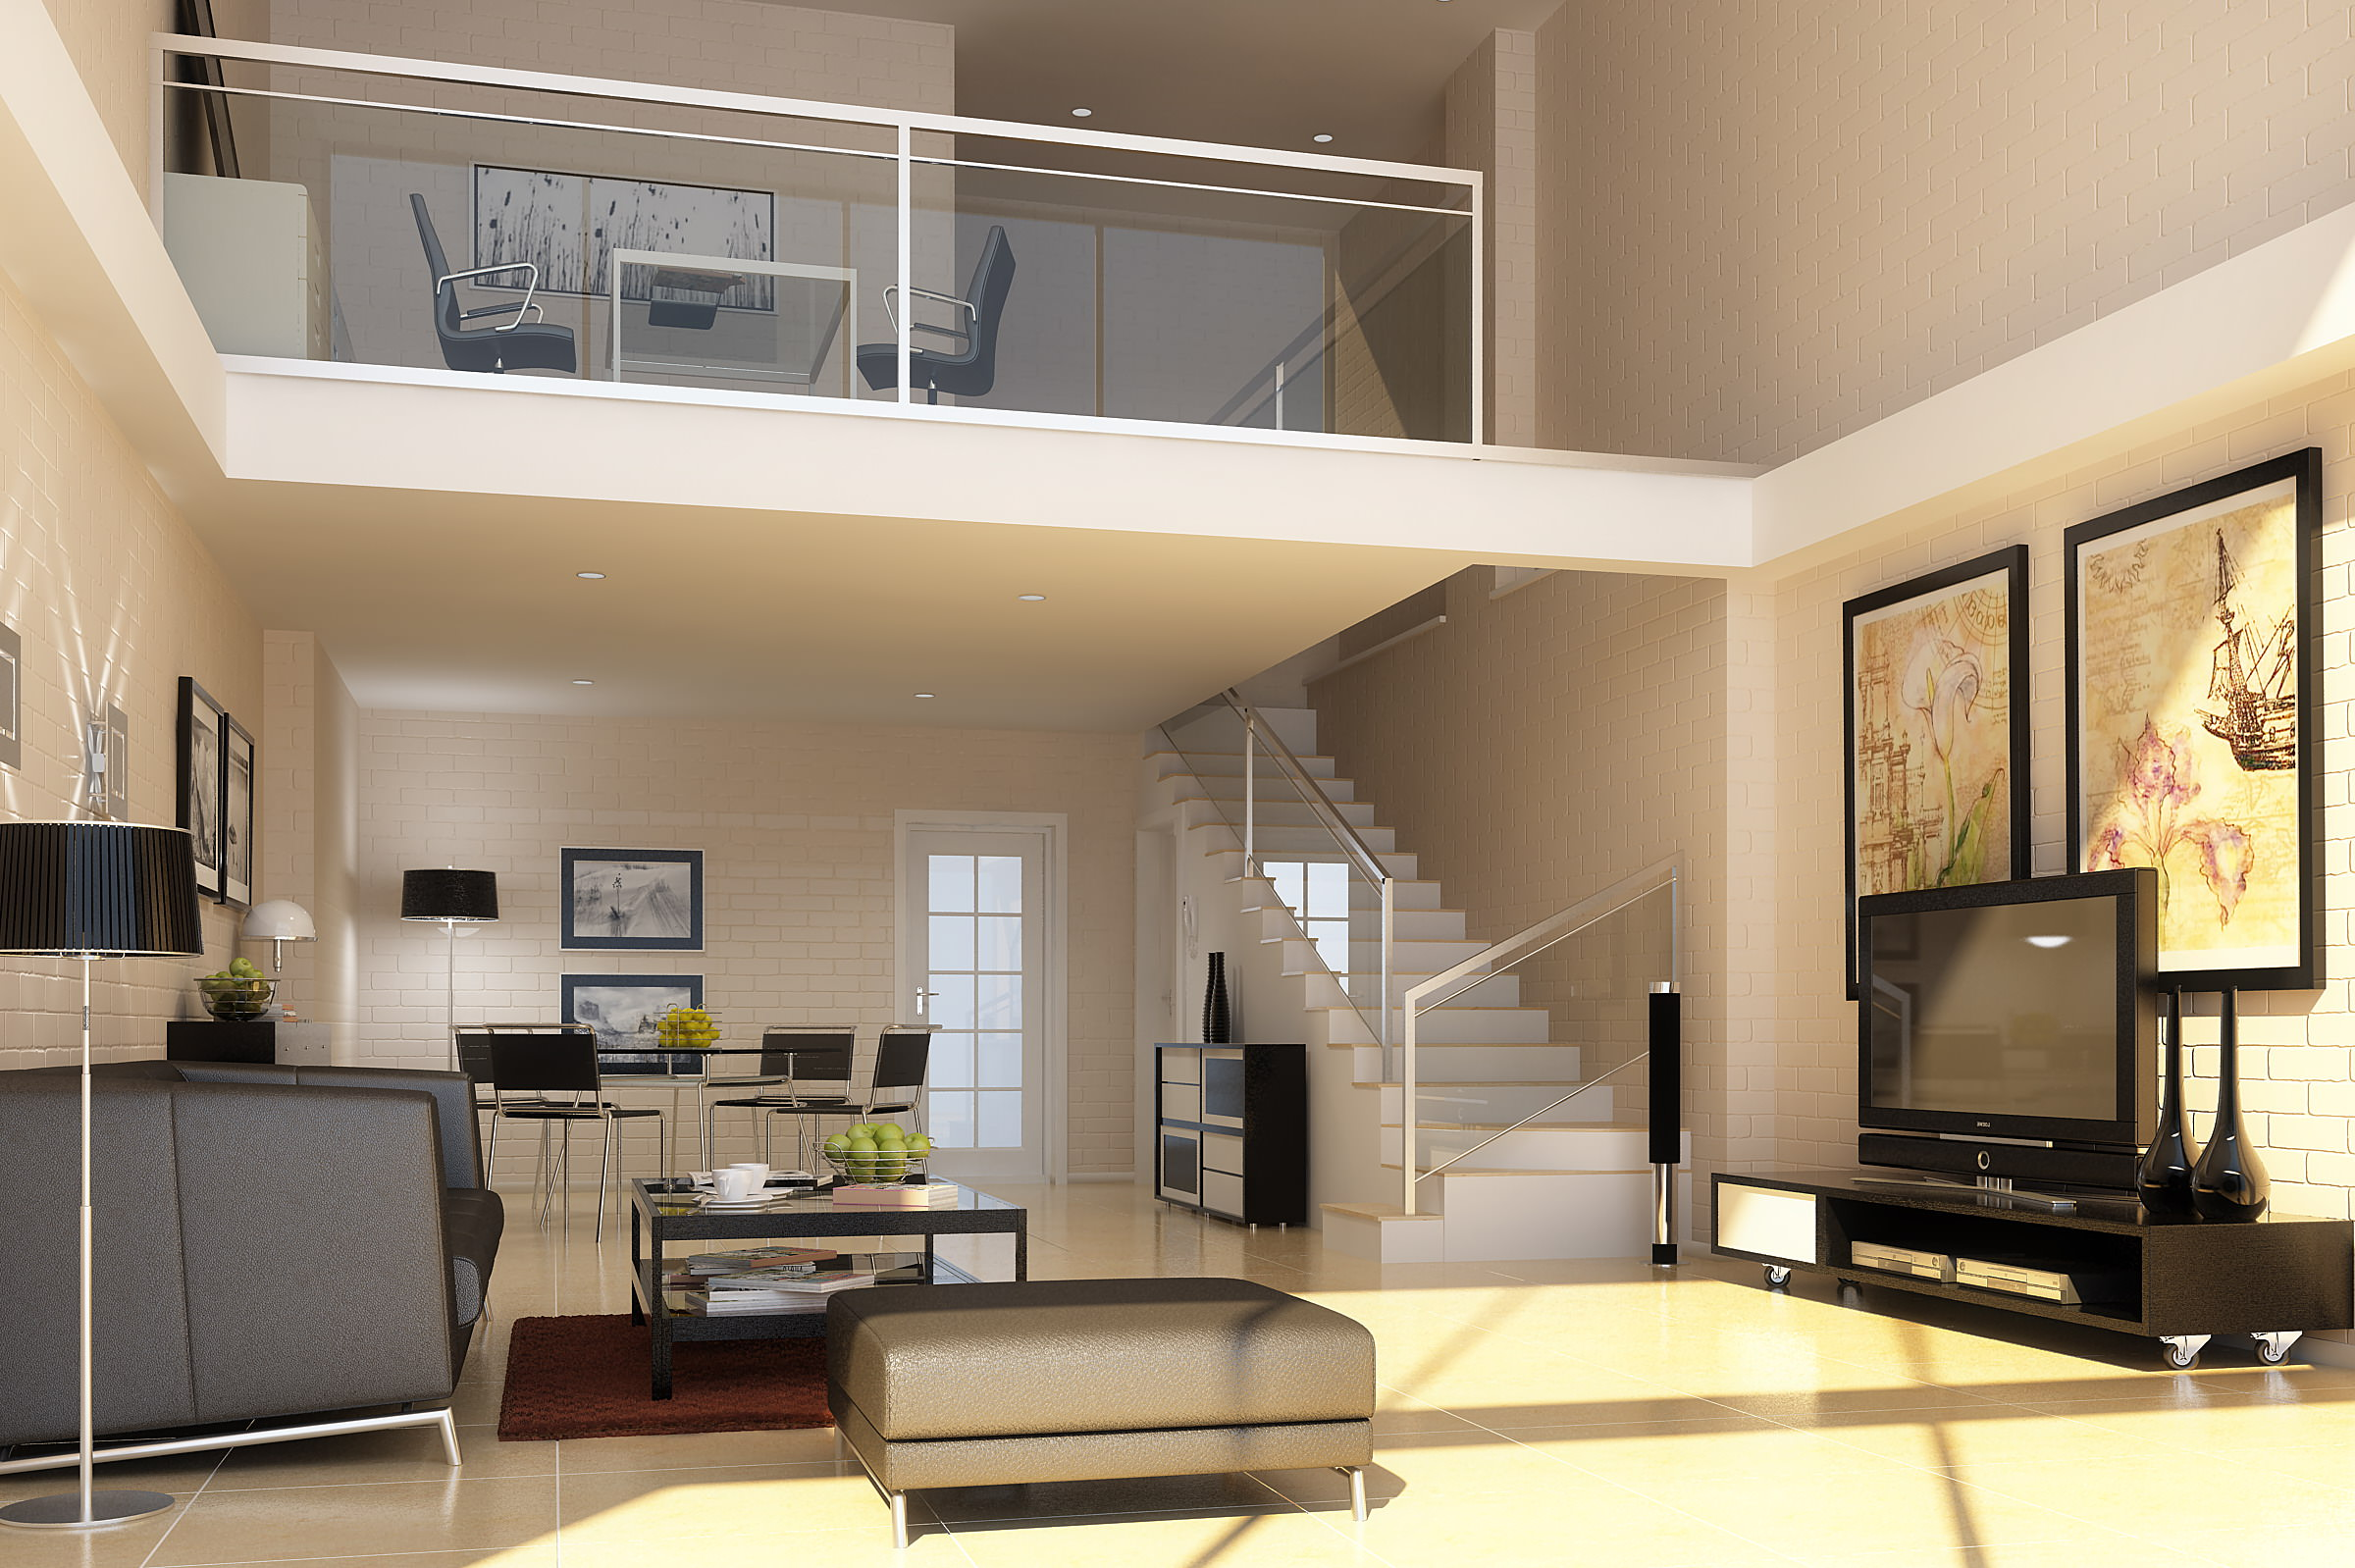 Posh living space with sofa and tv 3d model max - Sofas small spaces model ...